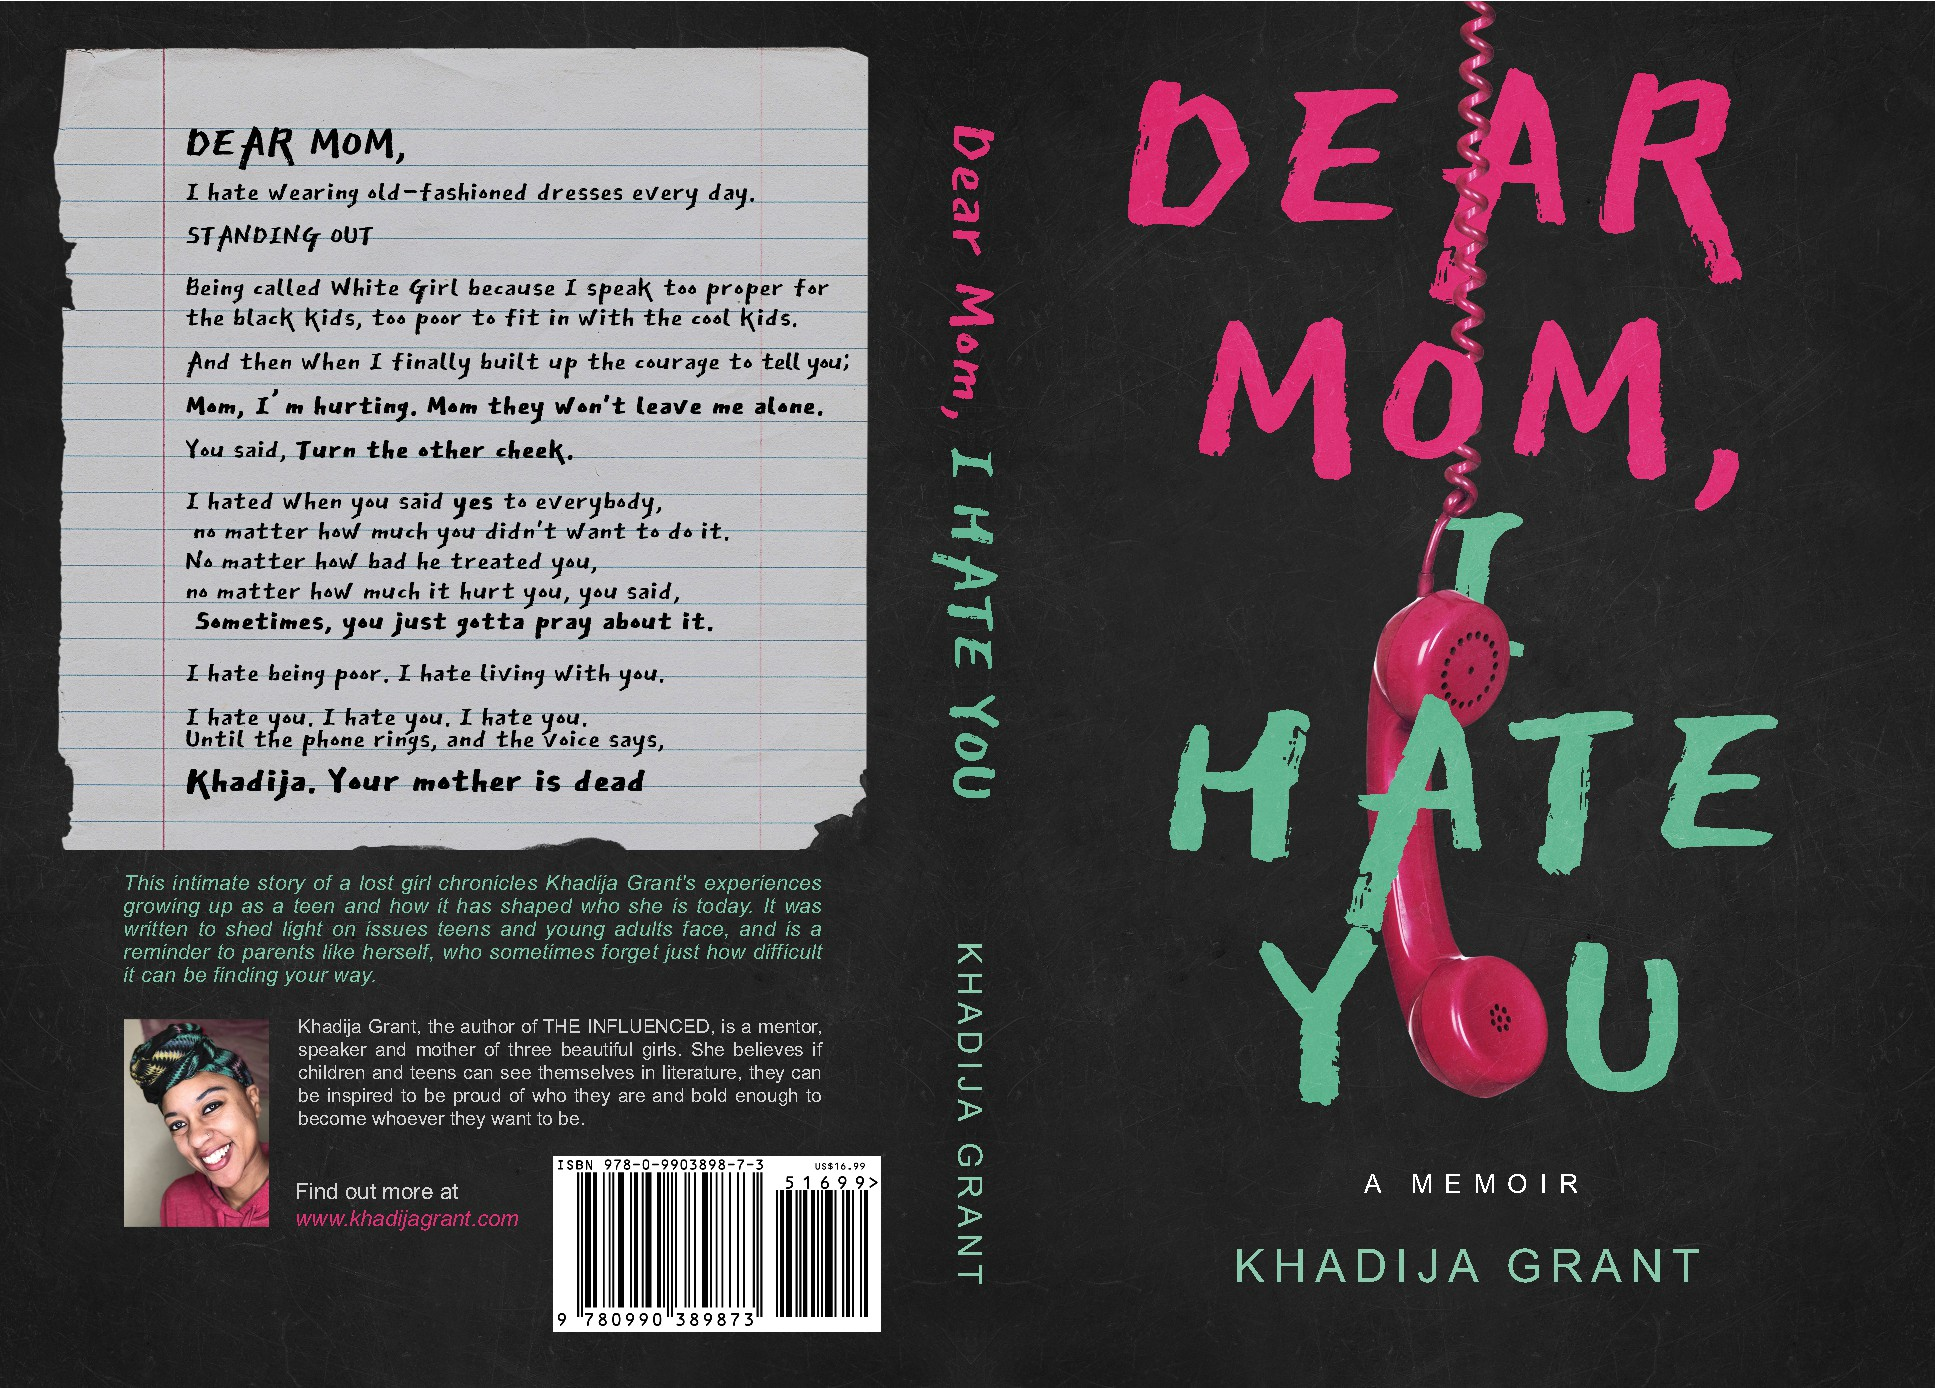 IMAGINATION NEEDED for a Young Adult Memoir!